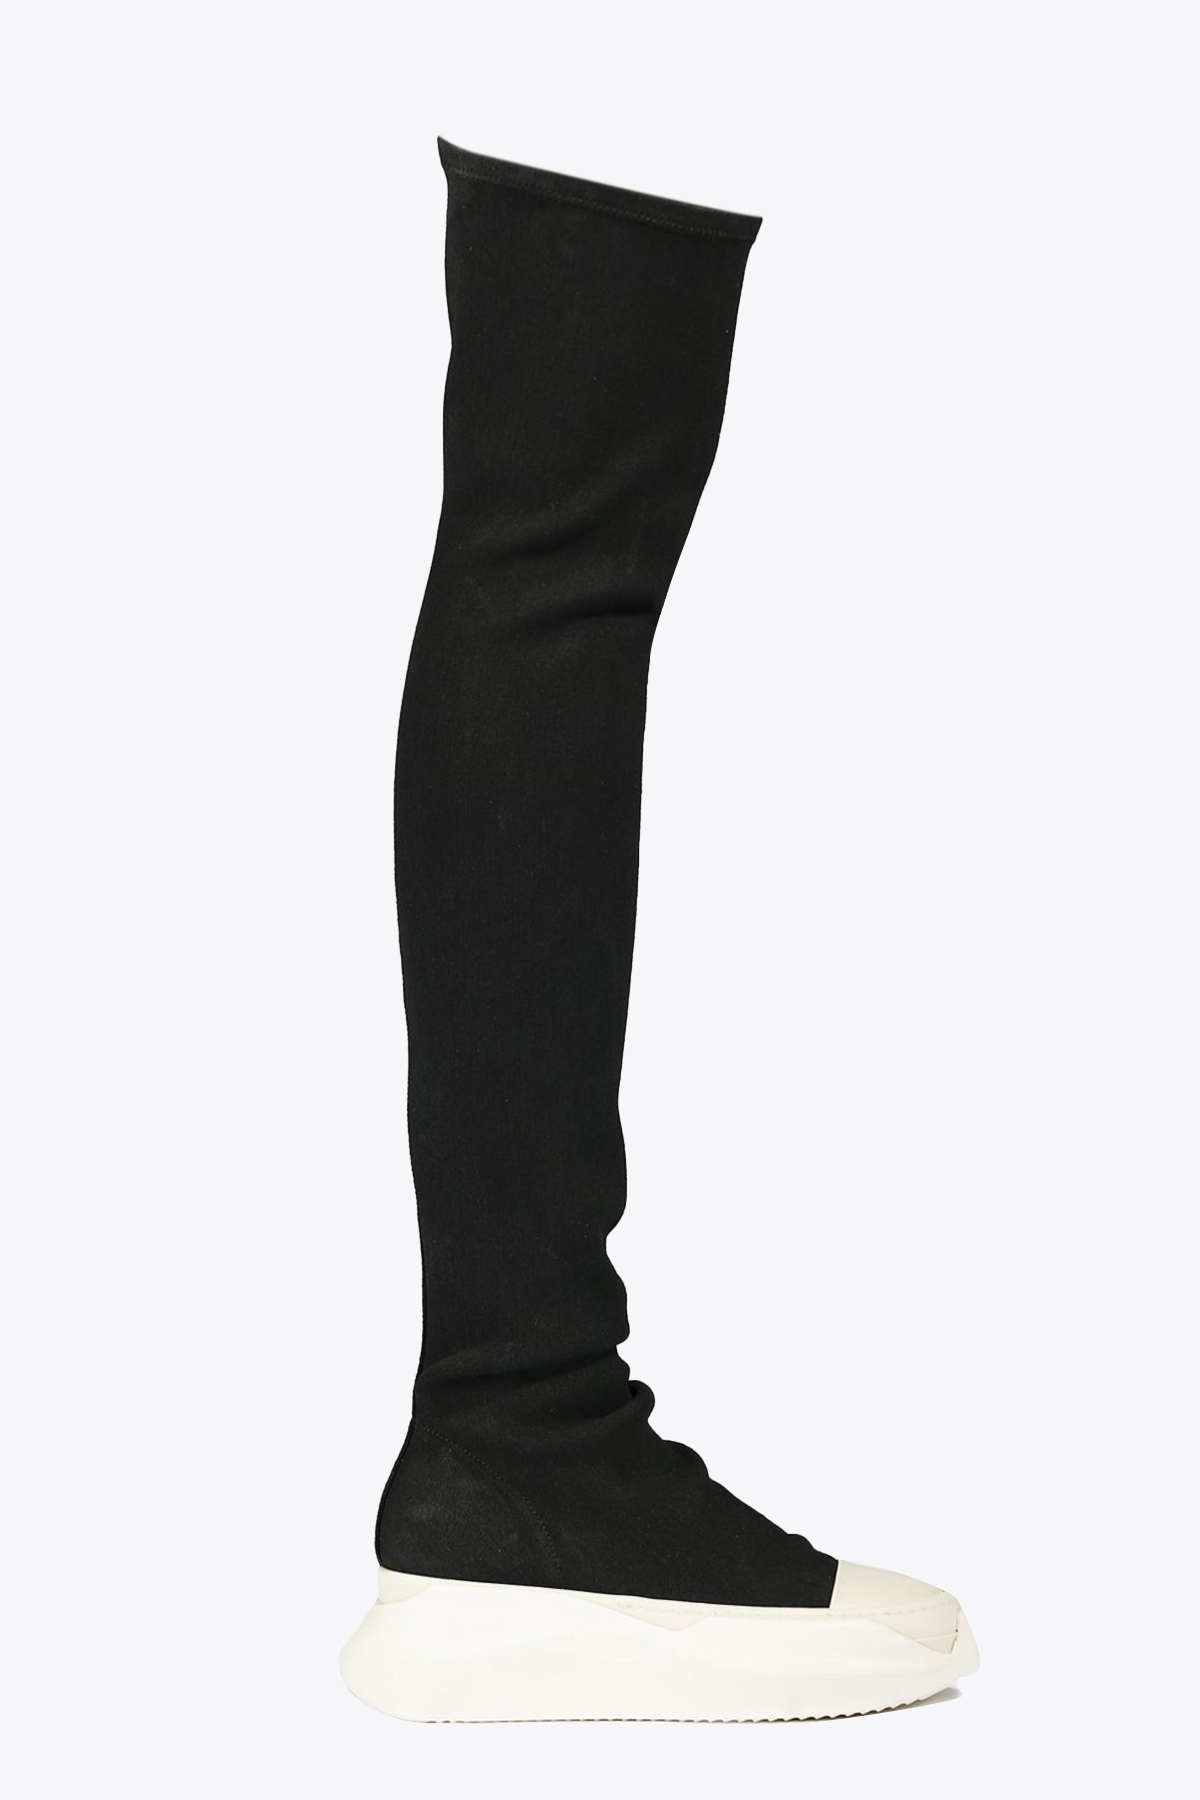 ABSTRACT STOCKINGS RICK OWENS-DRKSHDW | 76 | DS02A3841 SBB ABSTRACT STOCKINGS911